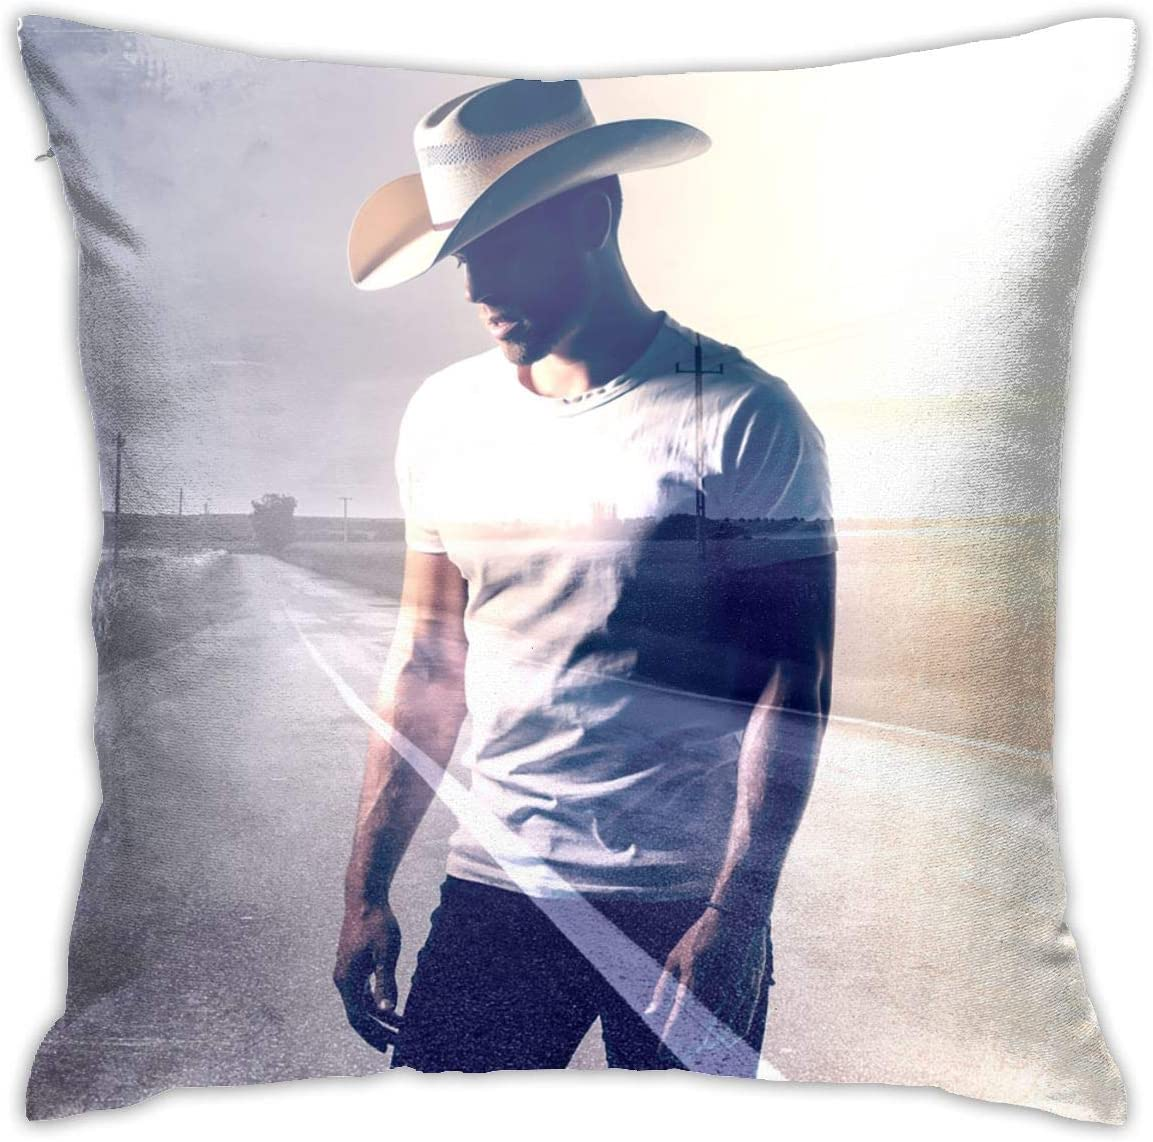 XEERAS Dustin Lynch Ridin' Roads Novelty Pillow Case Soft Comfortable Durable Decoration Cushion Cover Suit for Sofa Bedroom Living Room Chair Car Office